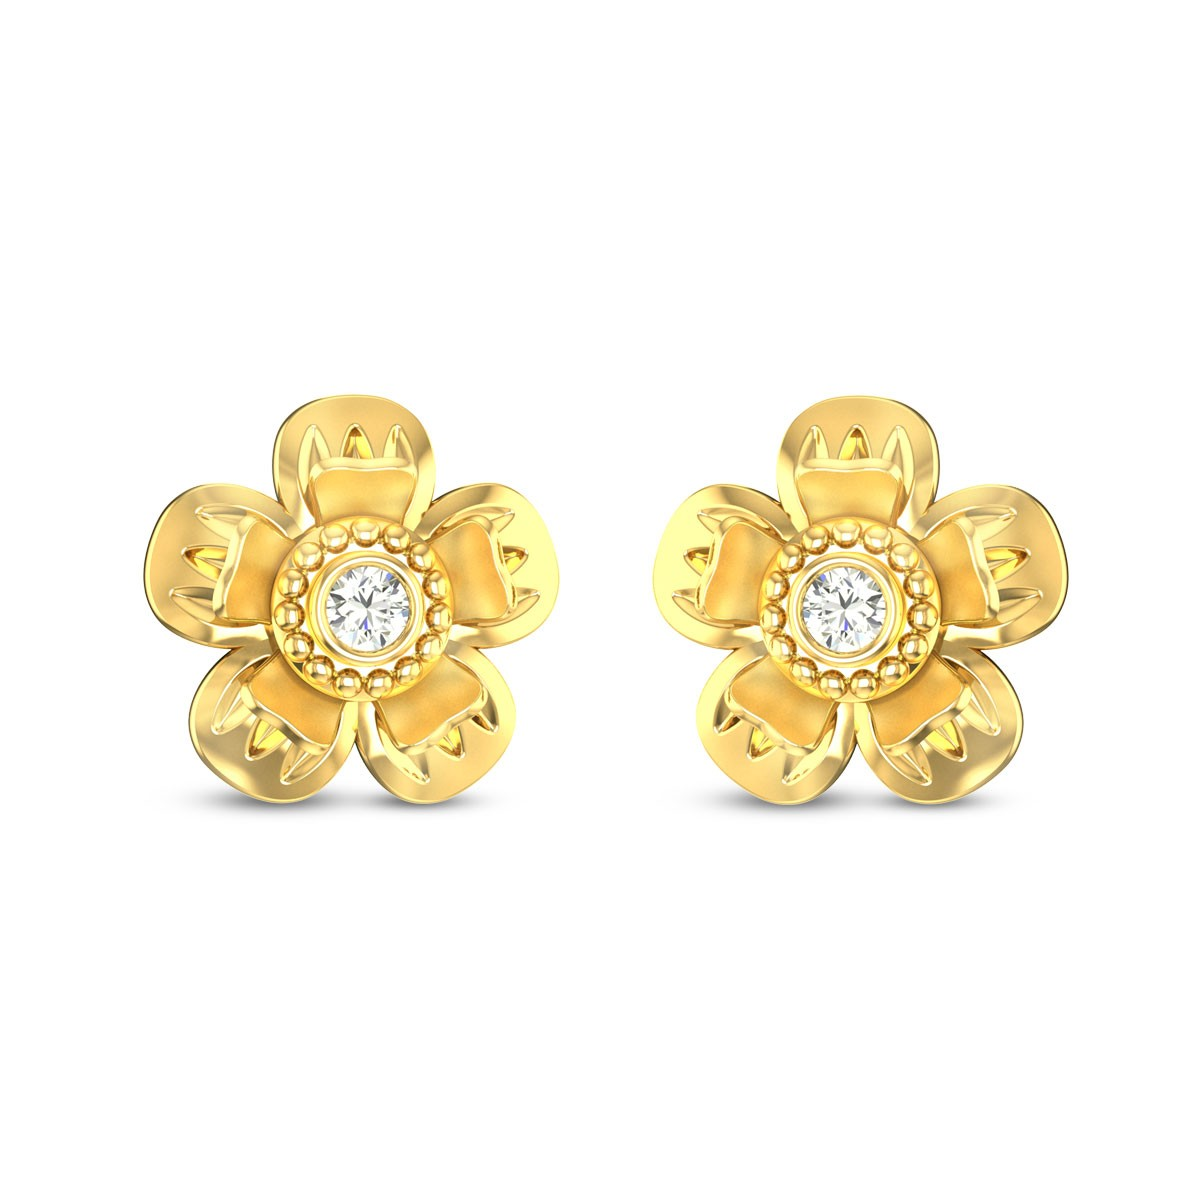 Buy Isis Flora 6.15 Gms Gold Stud Earrings Online